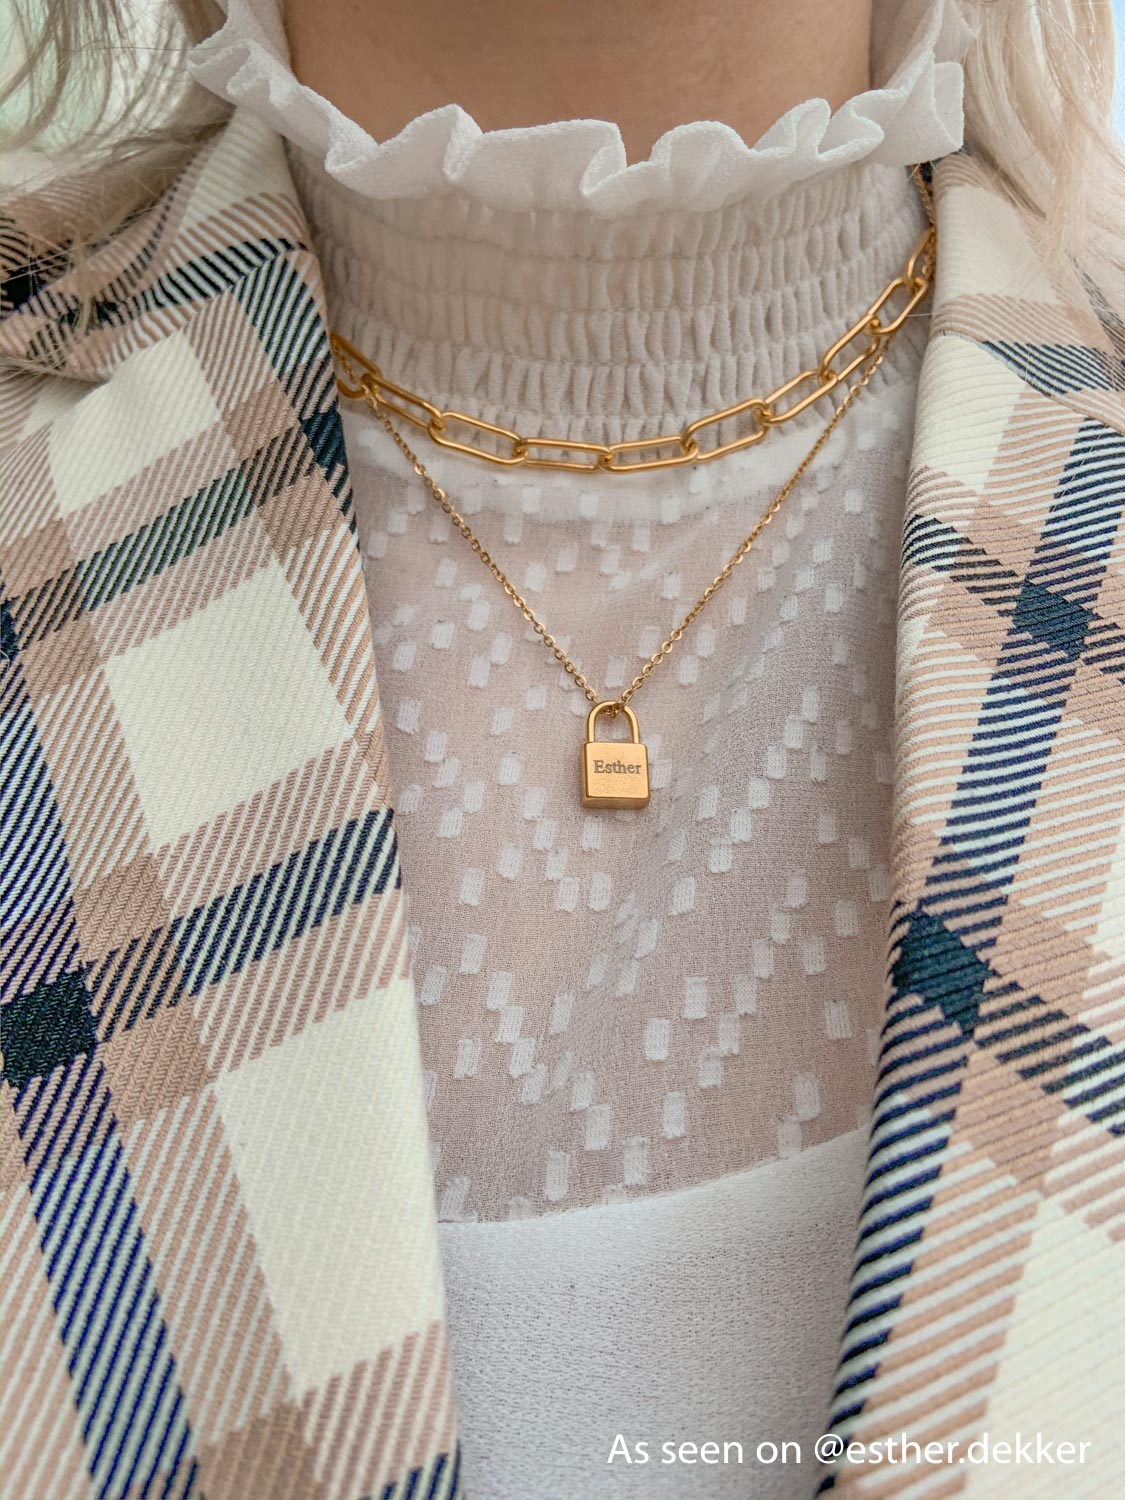 Influencer met gouden necklace layer om hals